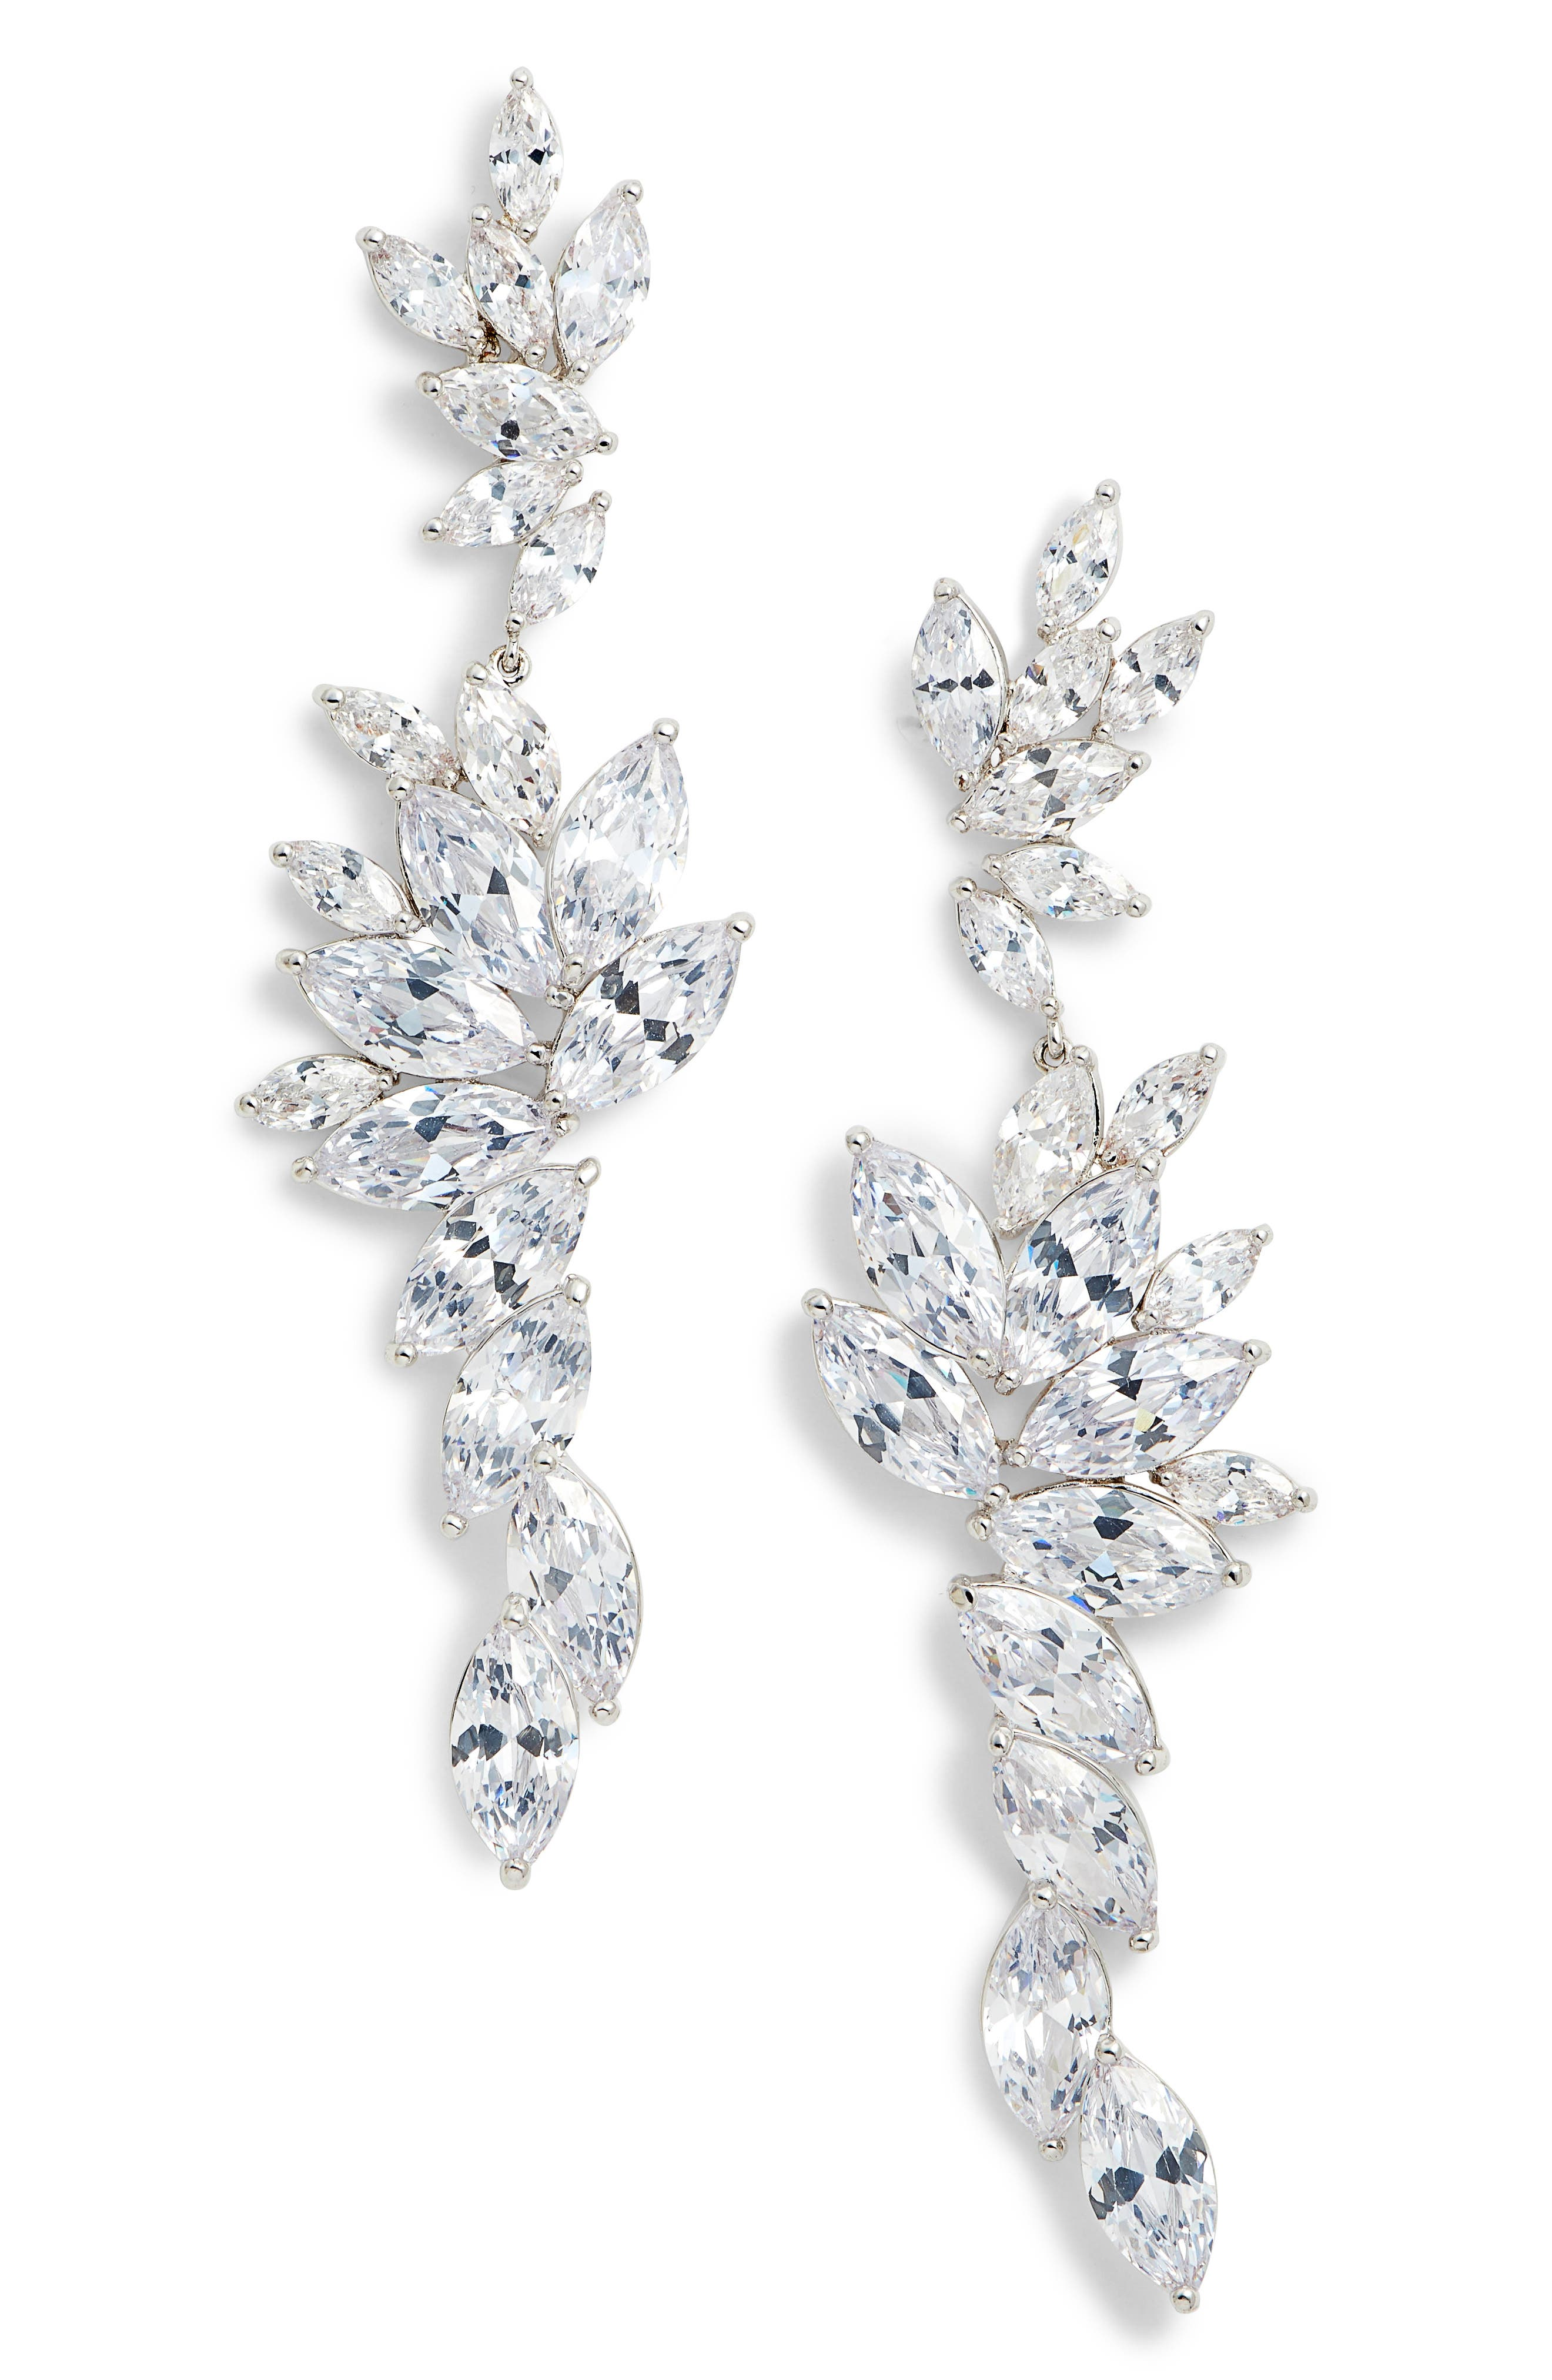 Layered Marquise Cubic Zirconia Statement Earrings,                             Main thumbnail 1, color,                             WHITE/ SILVER